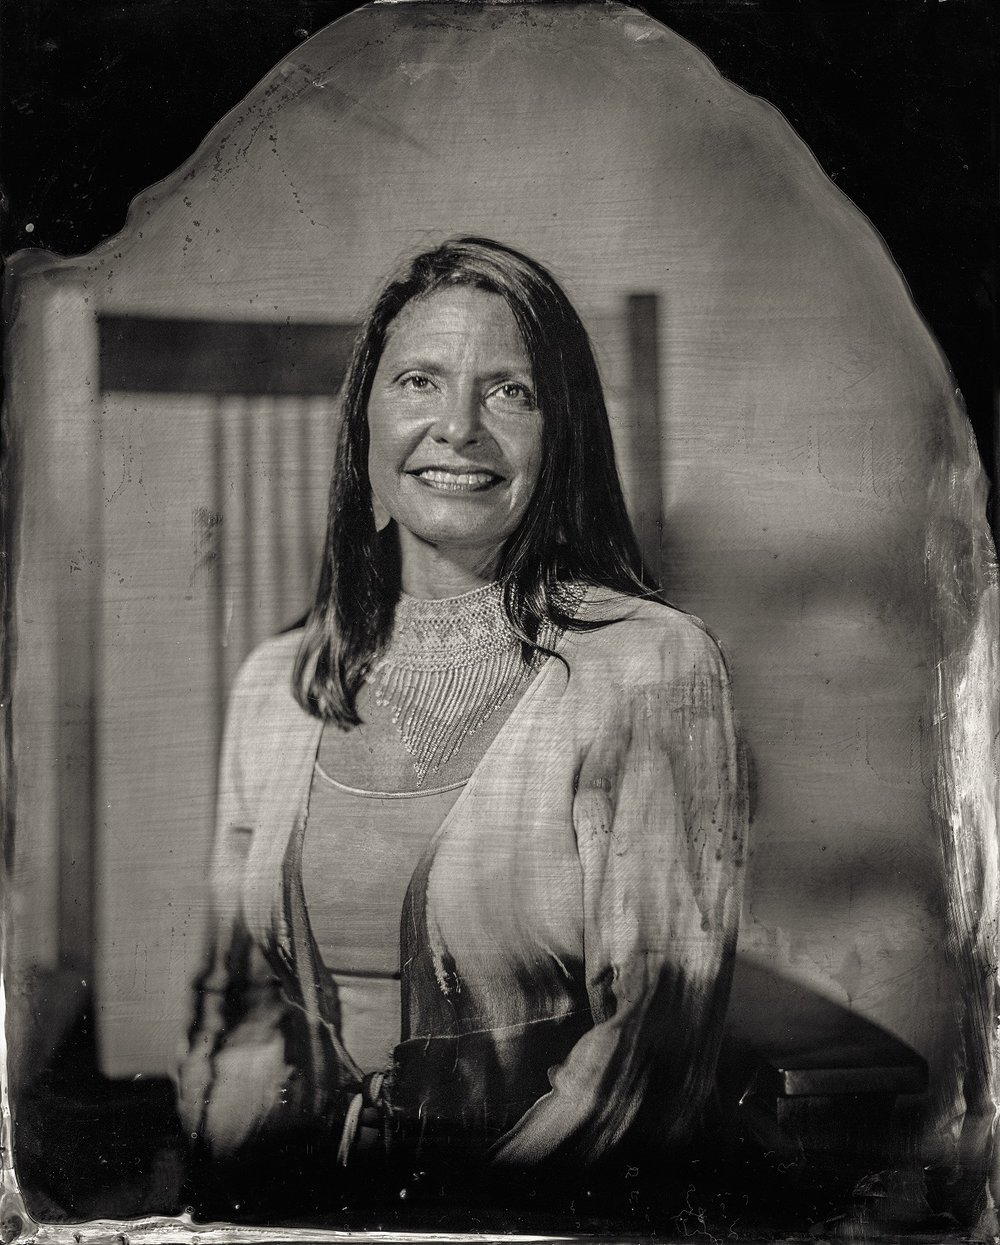 Will Wilson, Shoshana Wasserman, citizen of Muscogee (Creek) Nation and affiliated Thlopthlocco Tribal Town, 2016